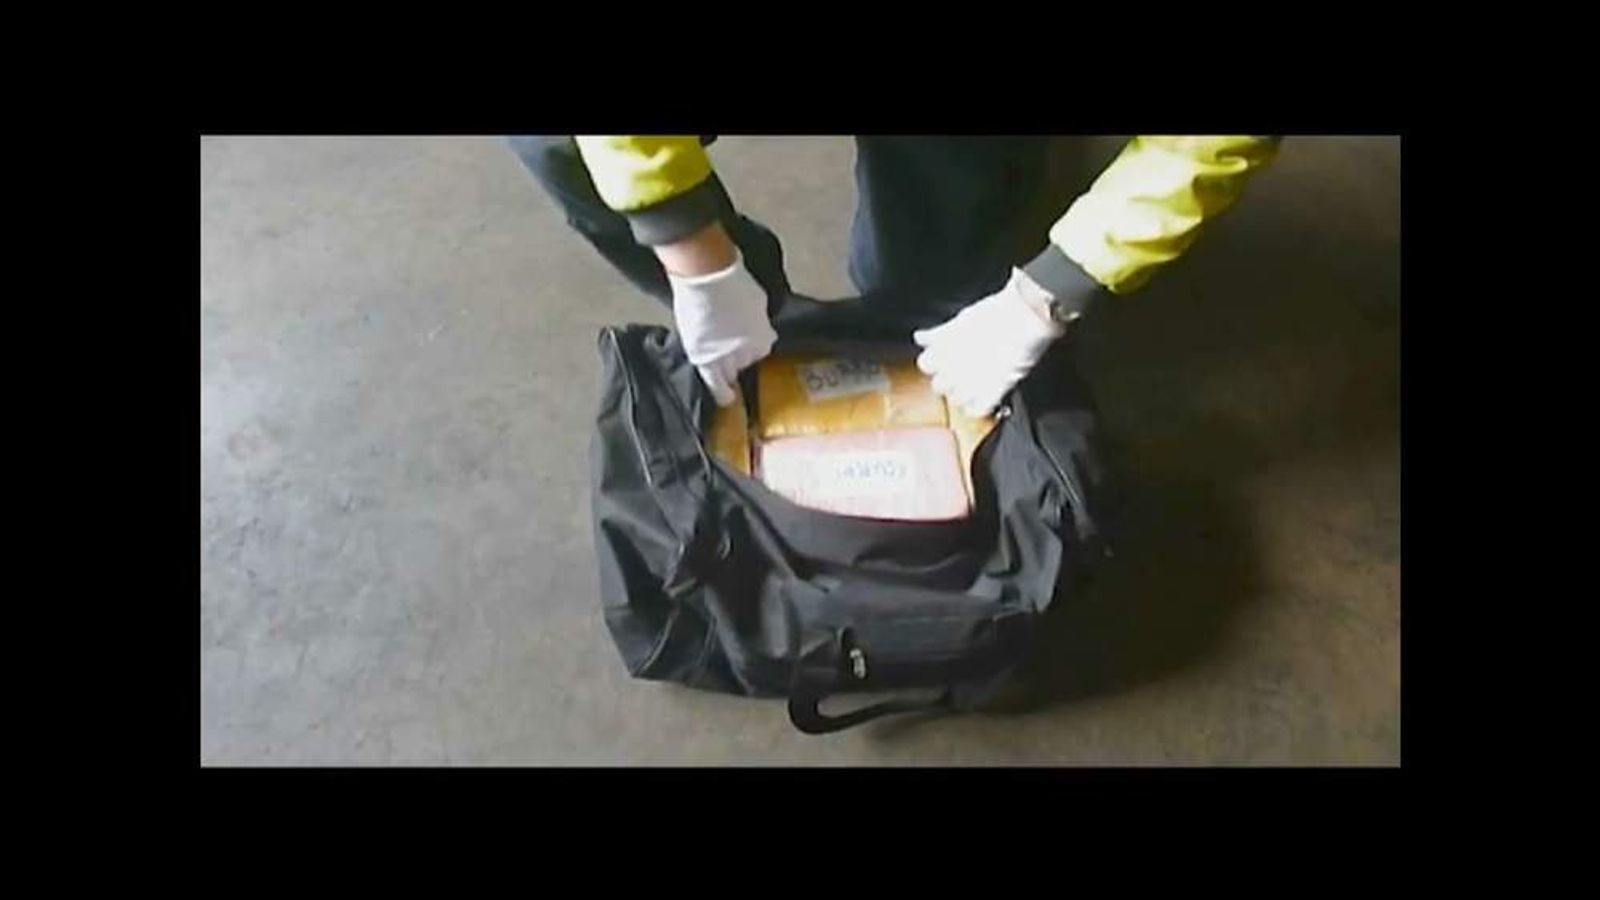 Opened Bag Reveals Sealed Boxes Containing Cocaine